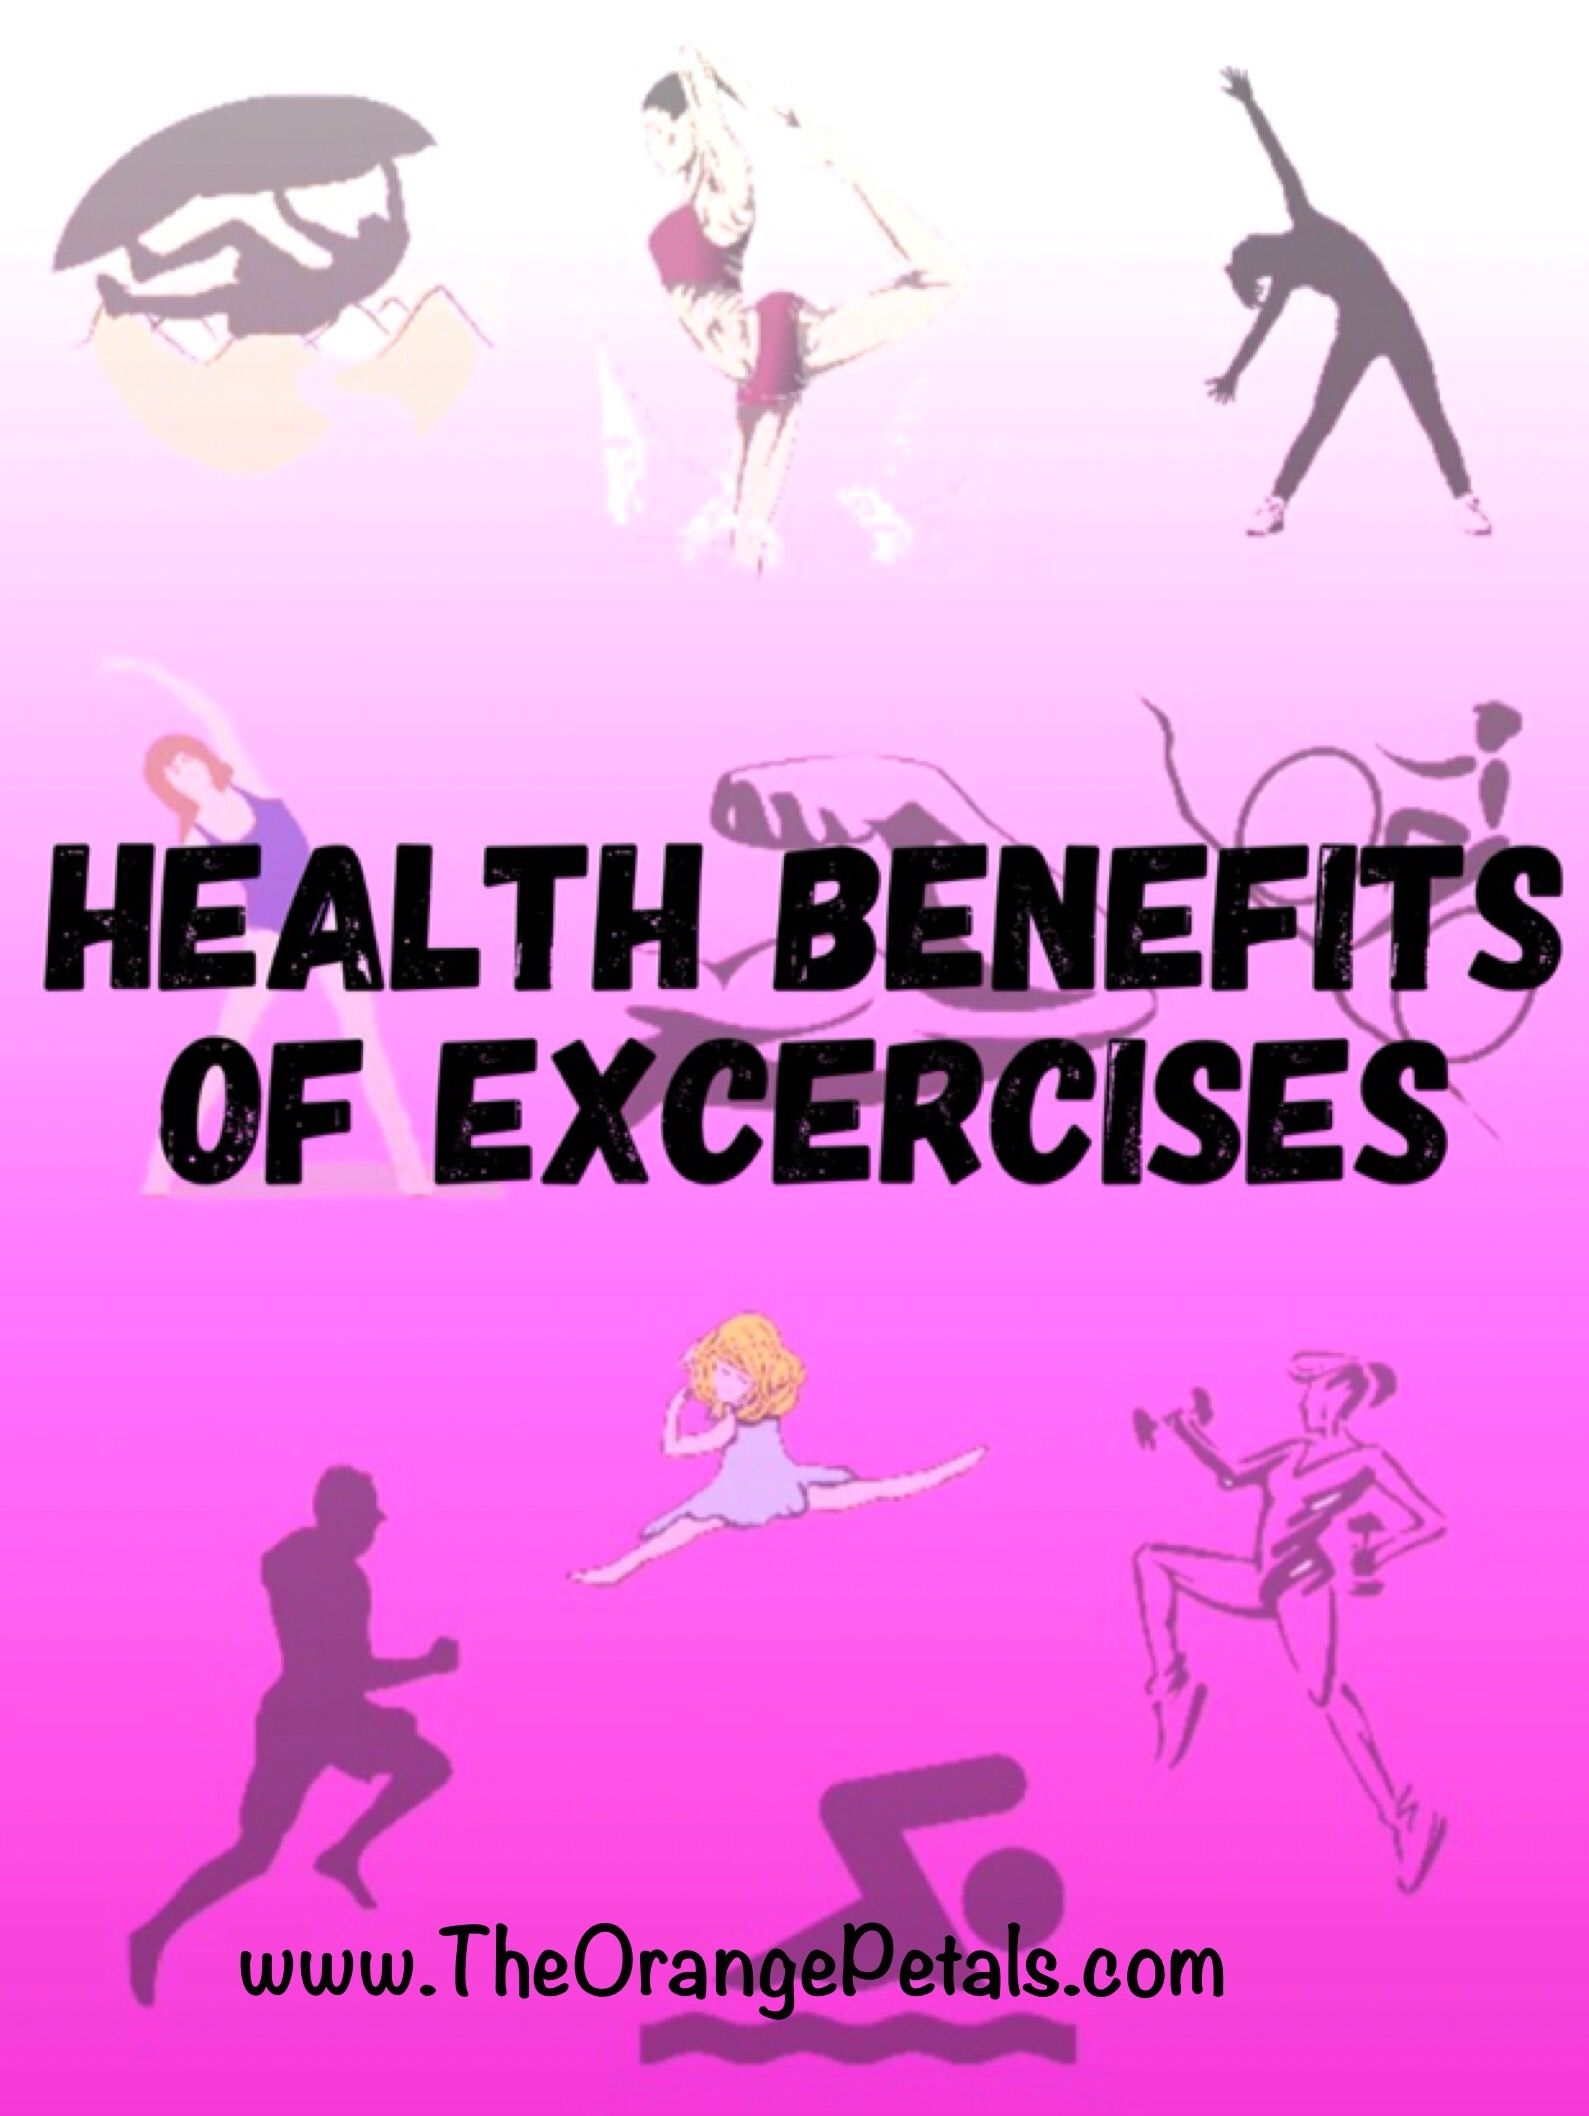 Health Benefits Of Exercise With Images